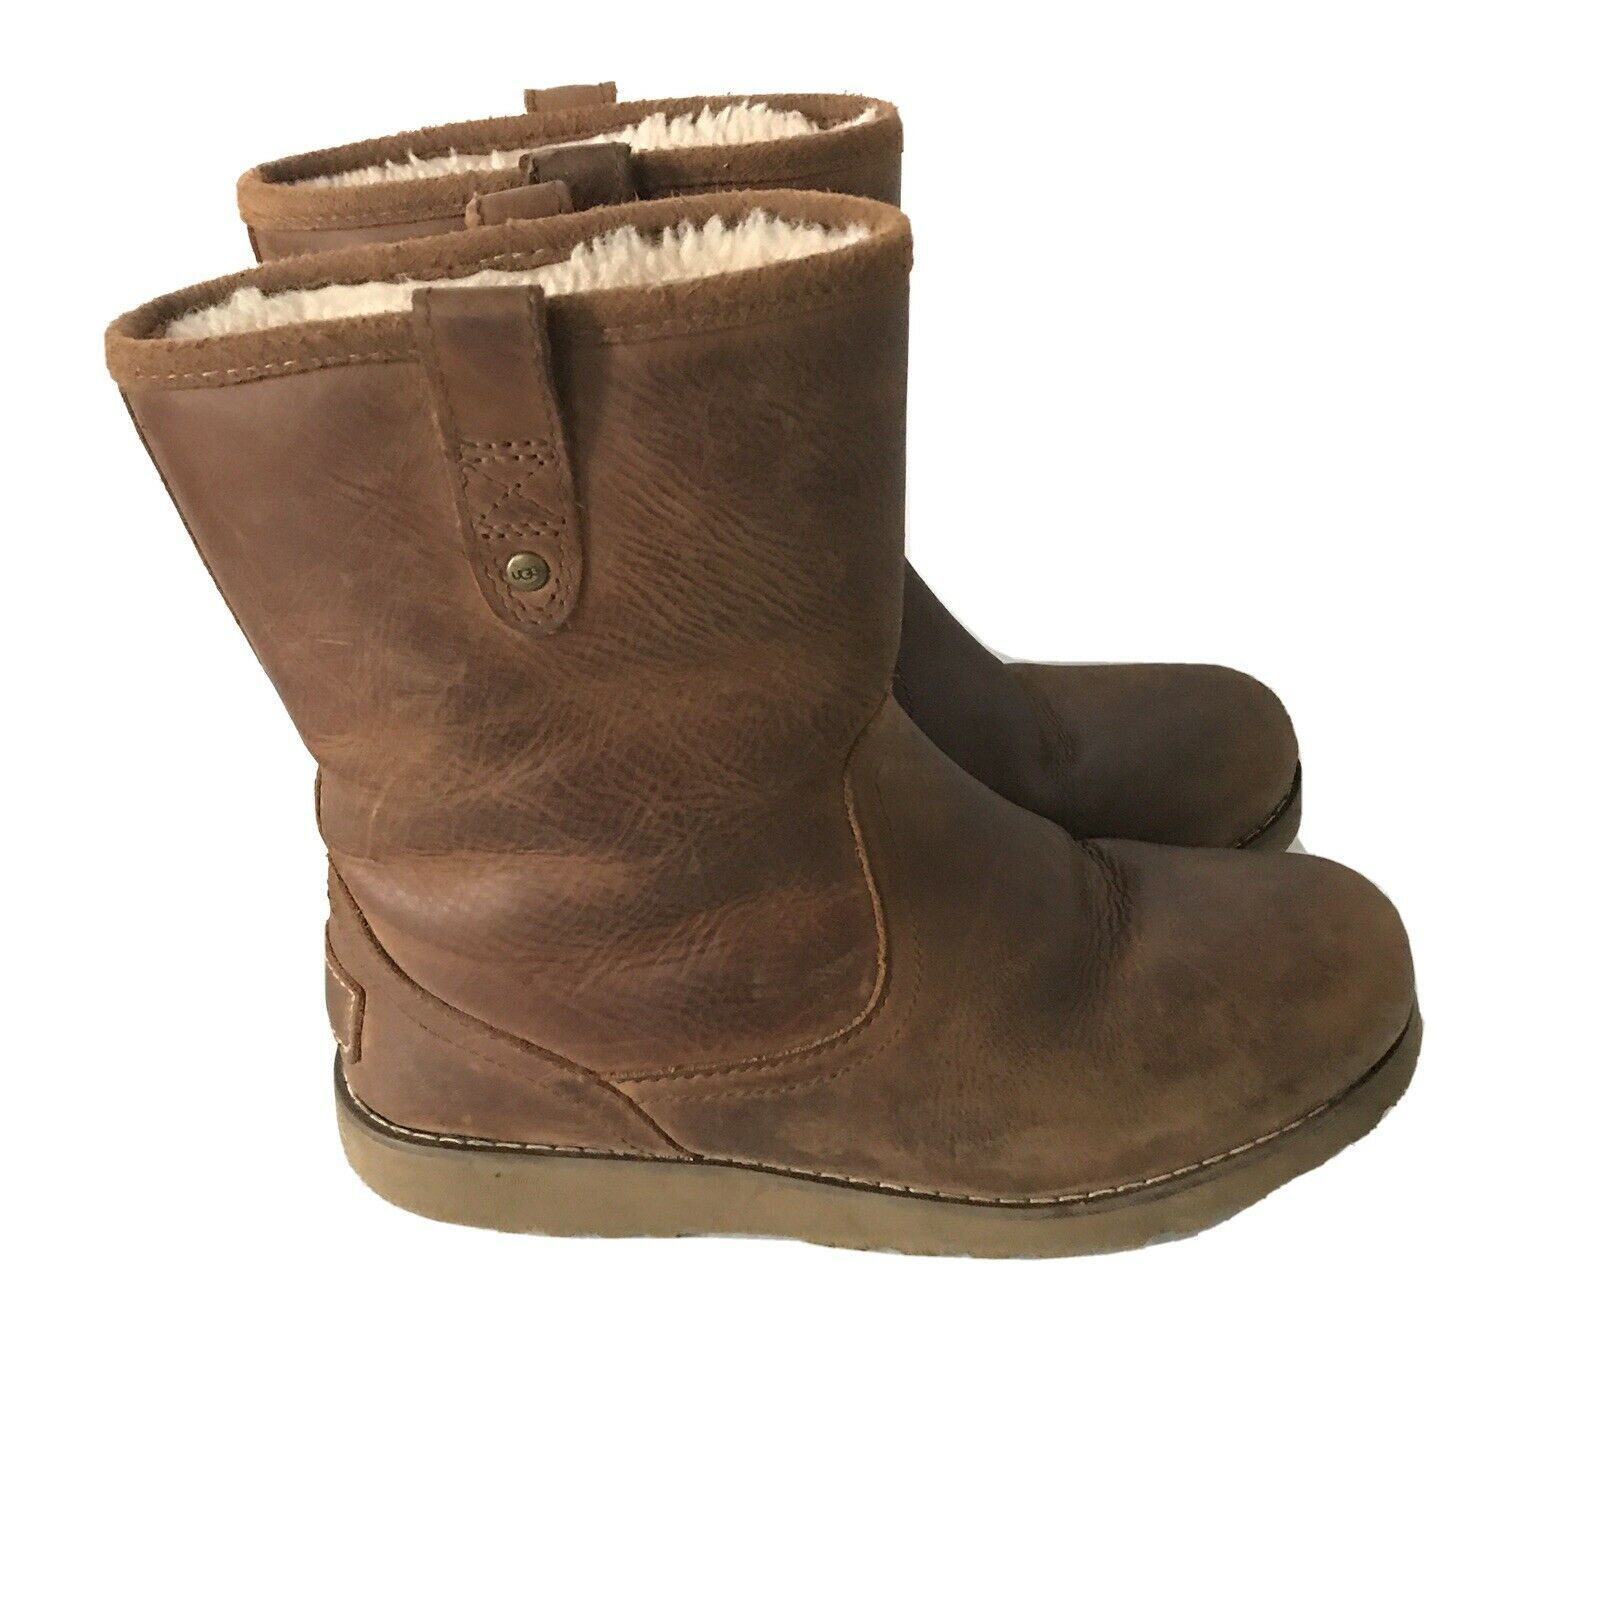 UGG Australia Redwood Chestnut Leather Sheepskin Ankle Boots Shearling Youth 3 - $43.19